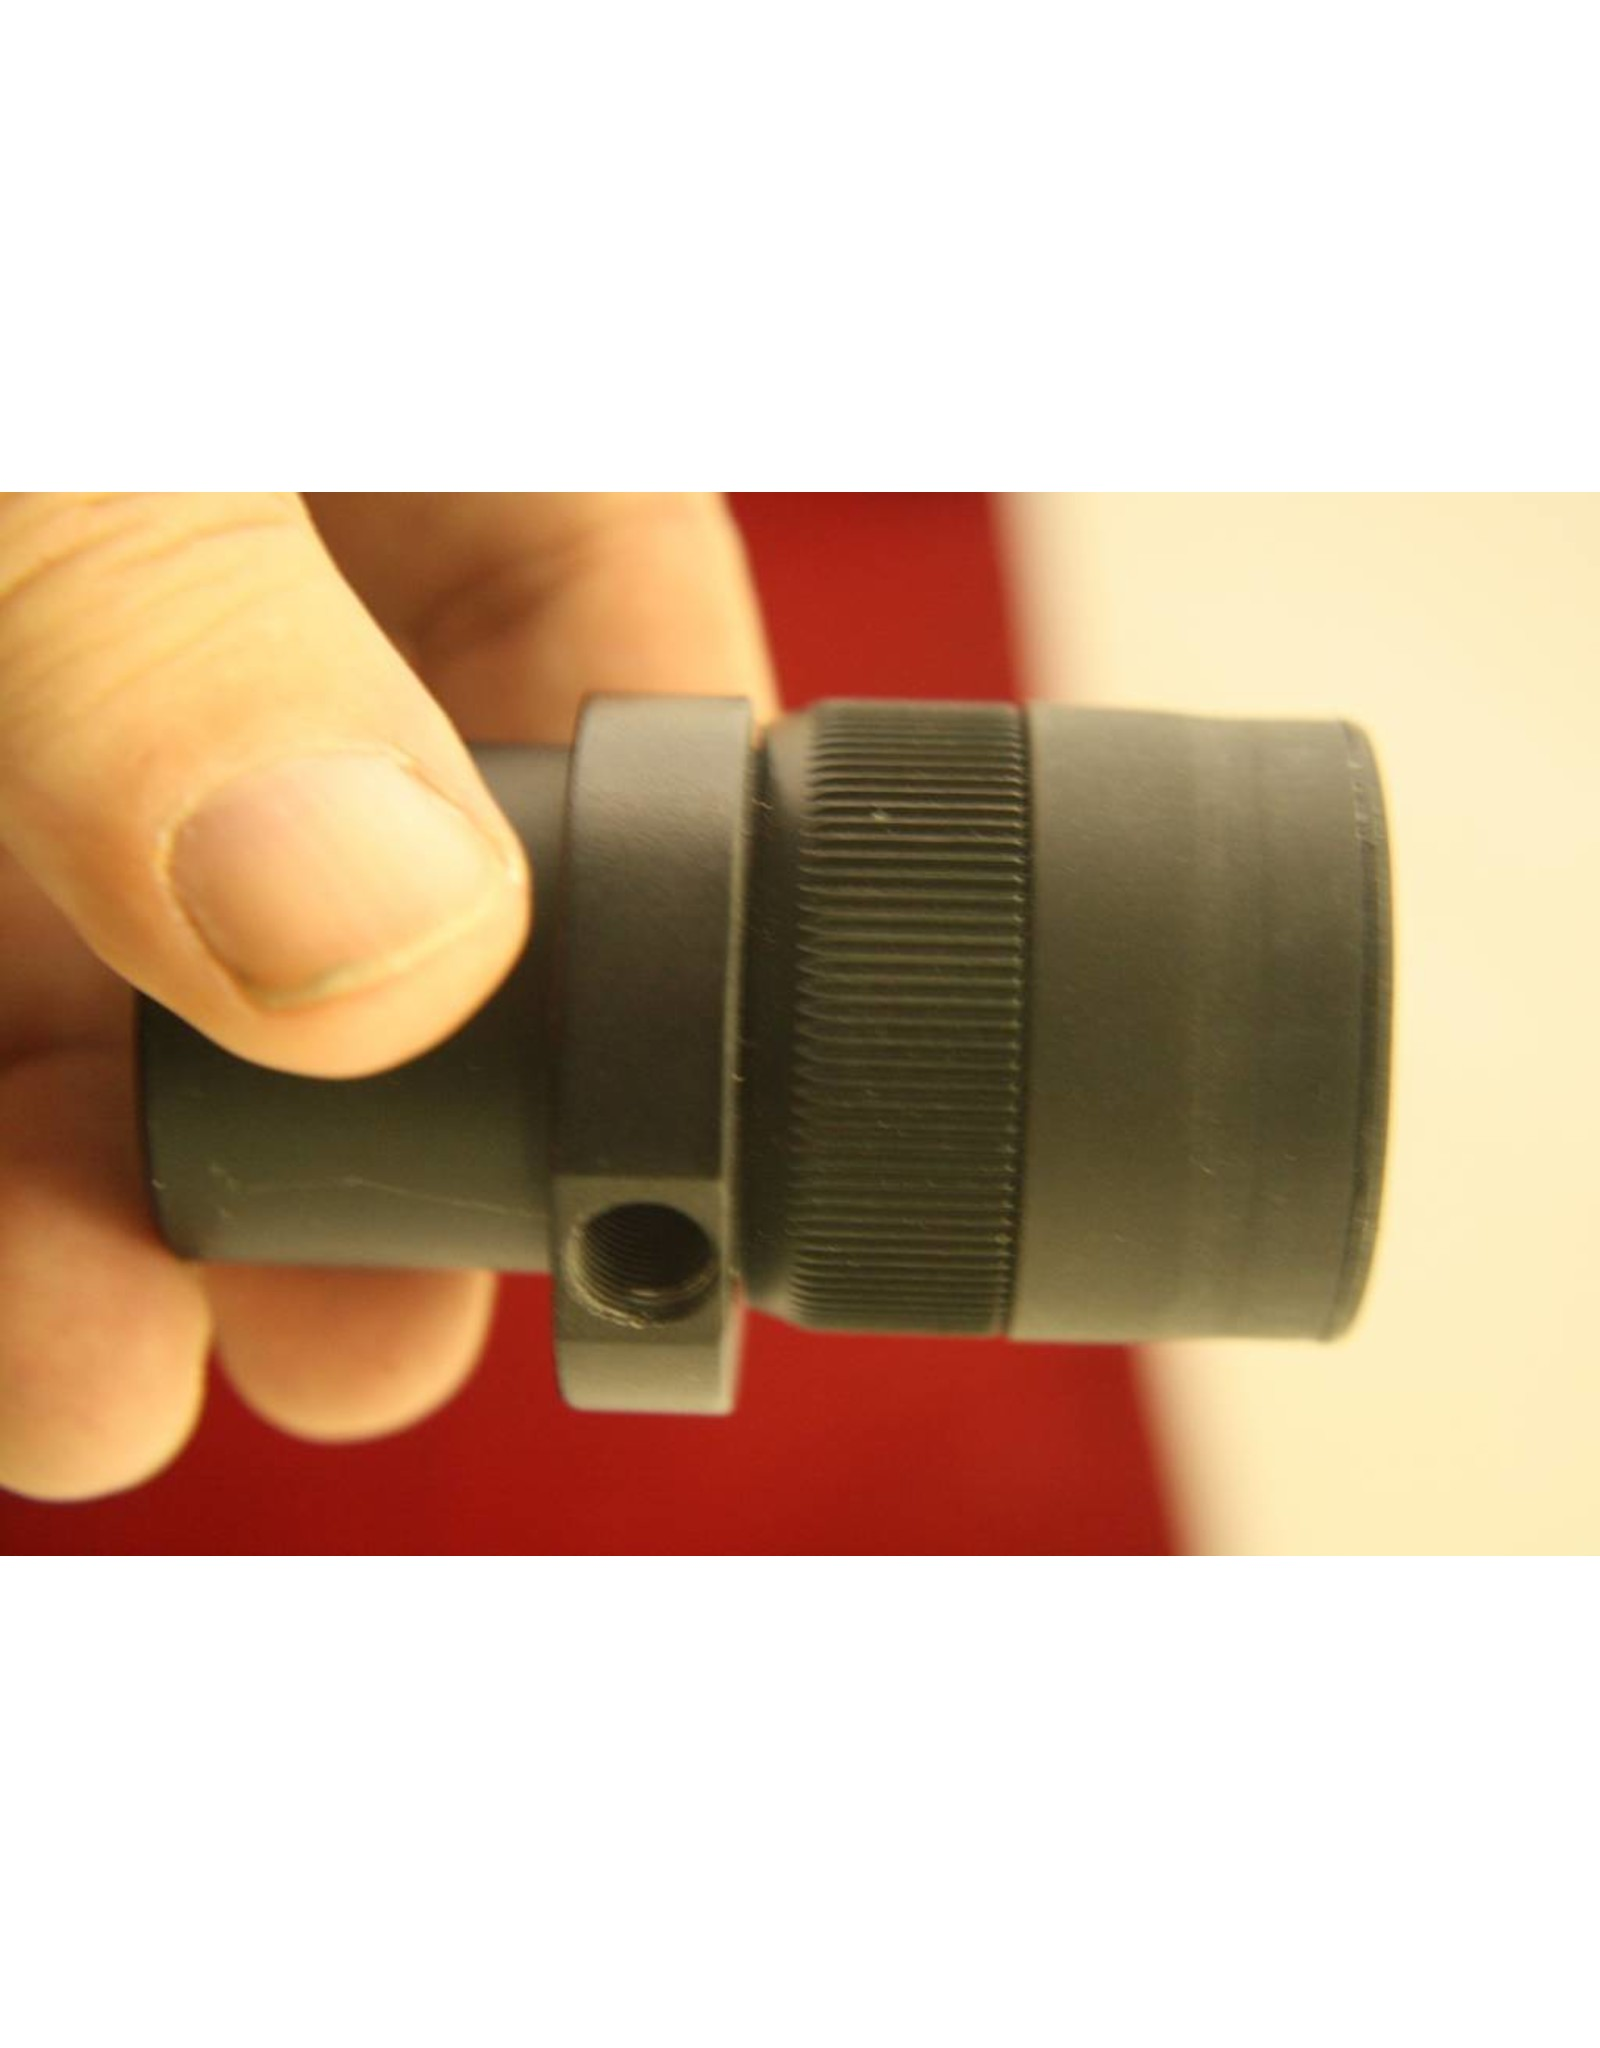 "Antares Optical Antares 1.25"" Illuminated Reticle Kellner Eyepiece - 27mm"